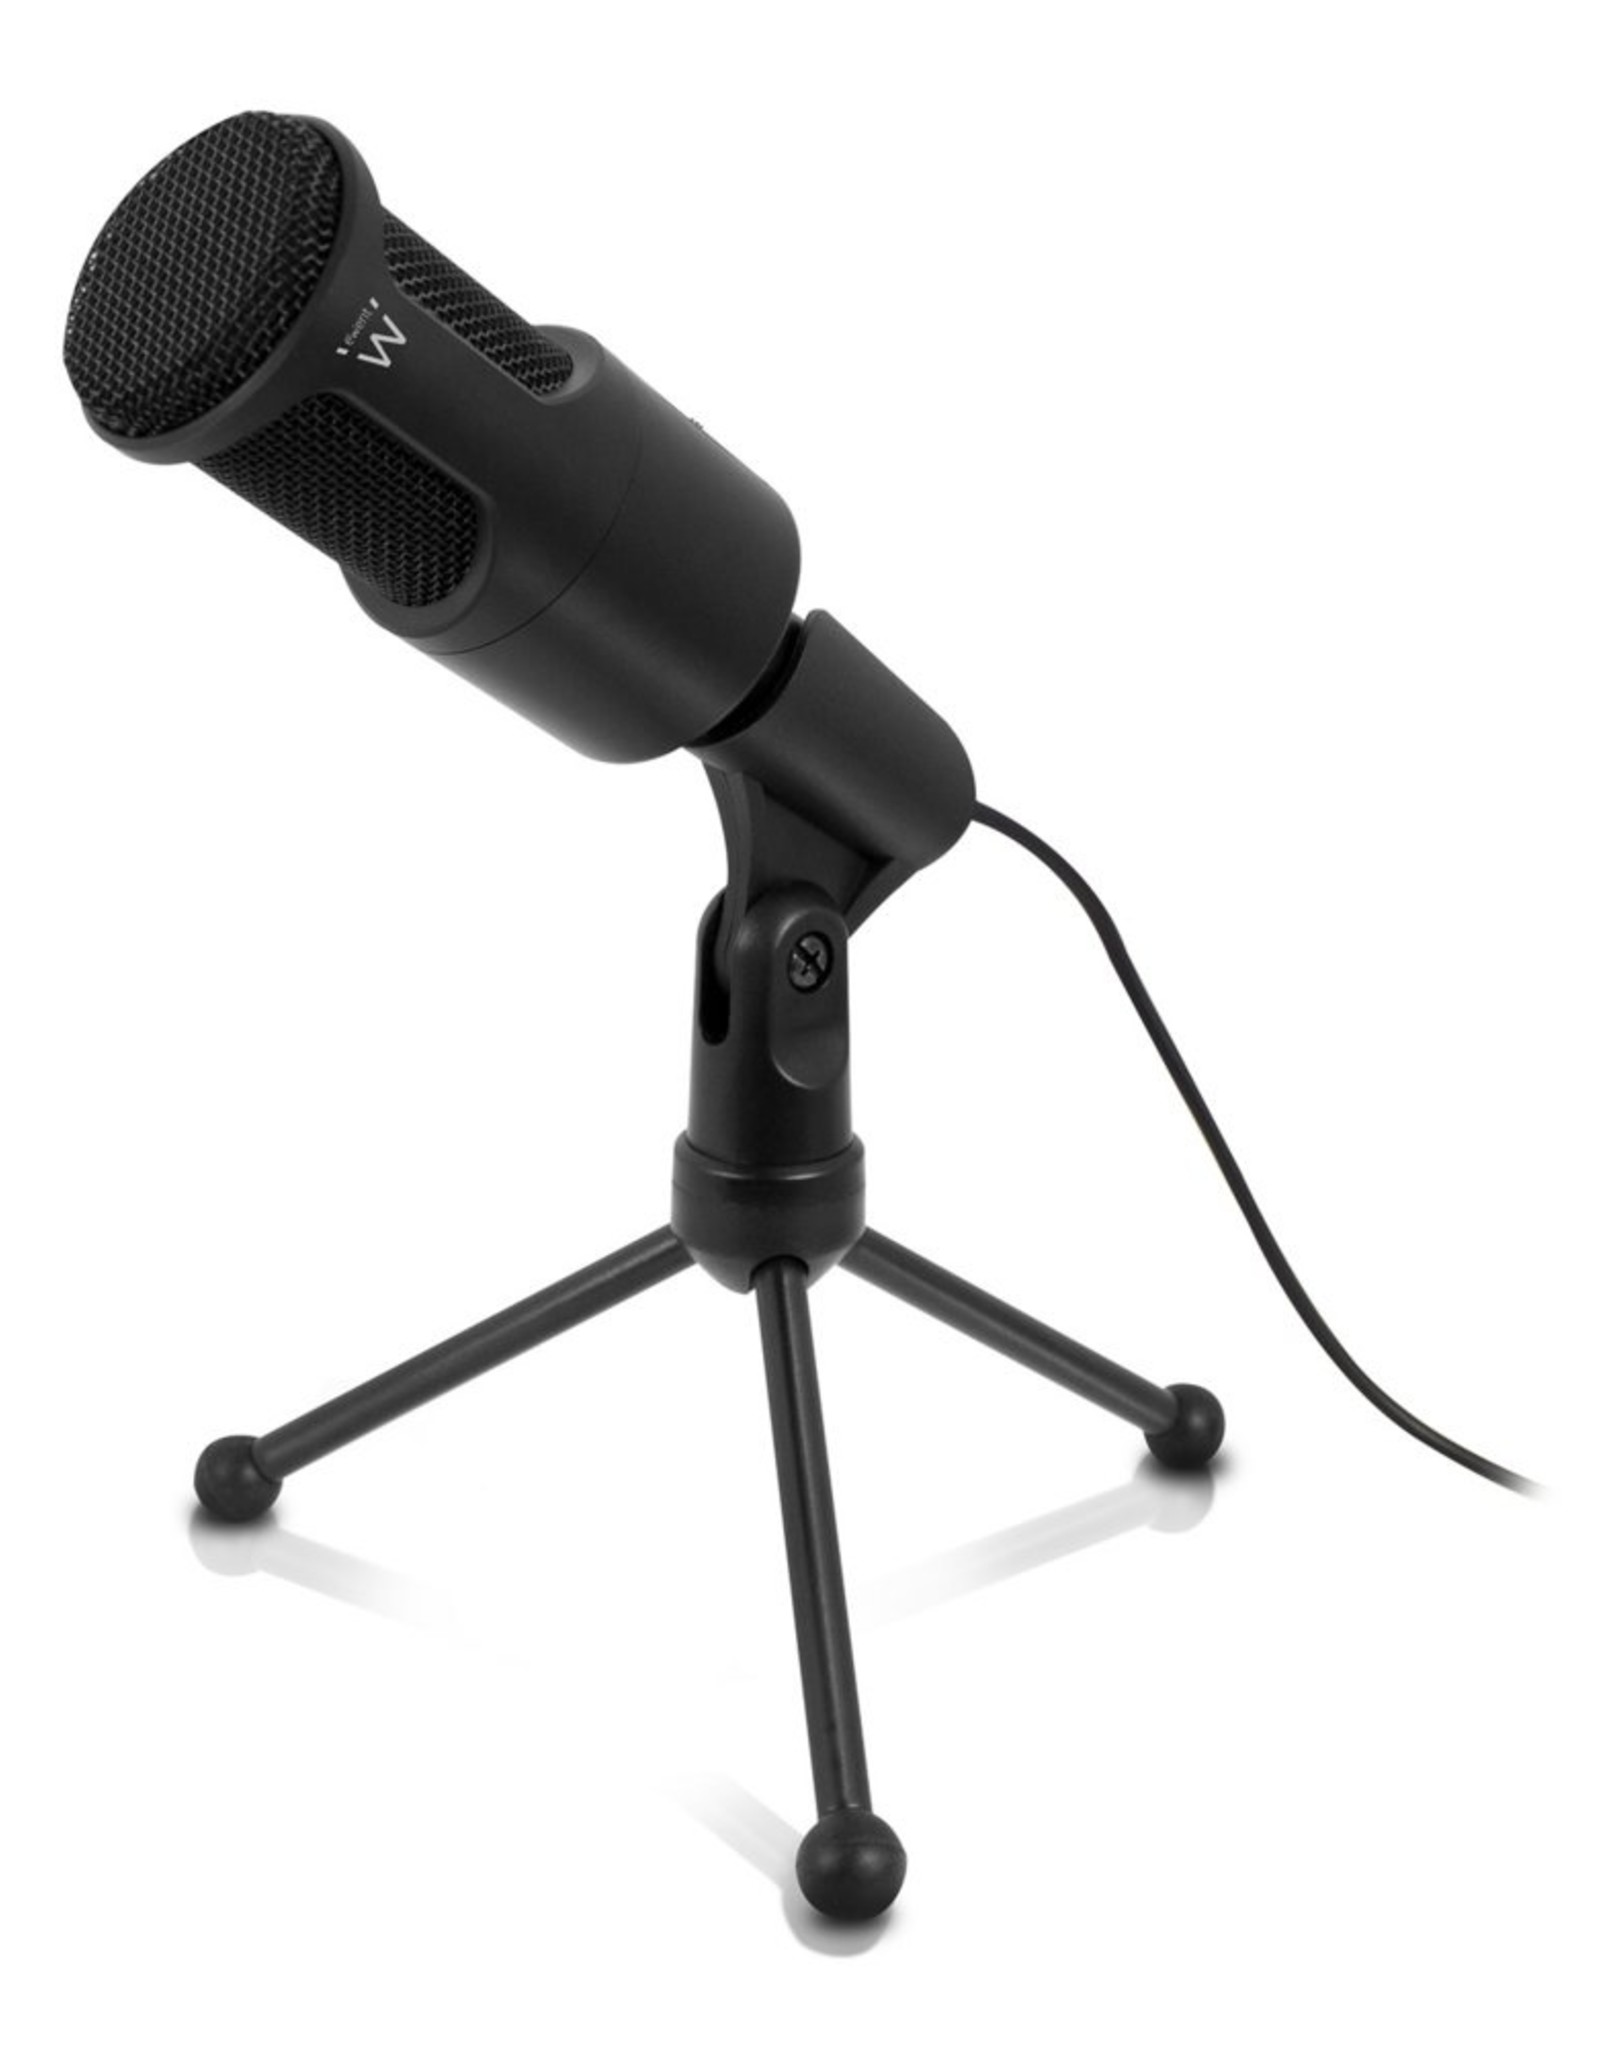 Professional Multimedia Microphone with stand (refurbished)